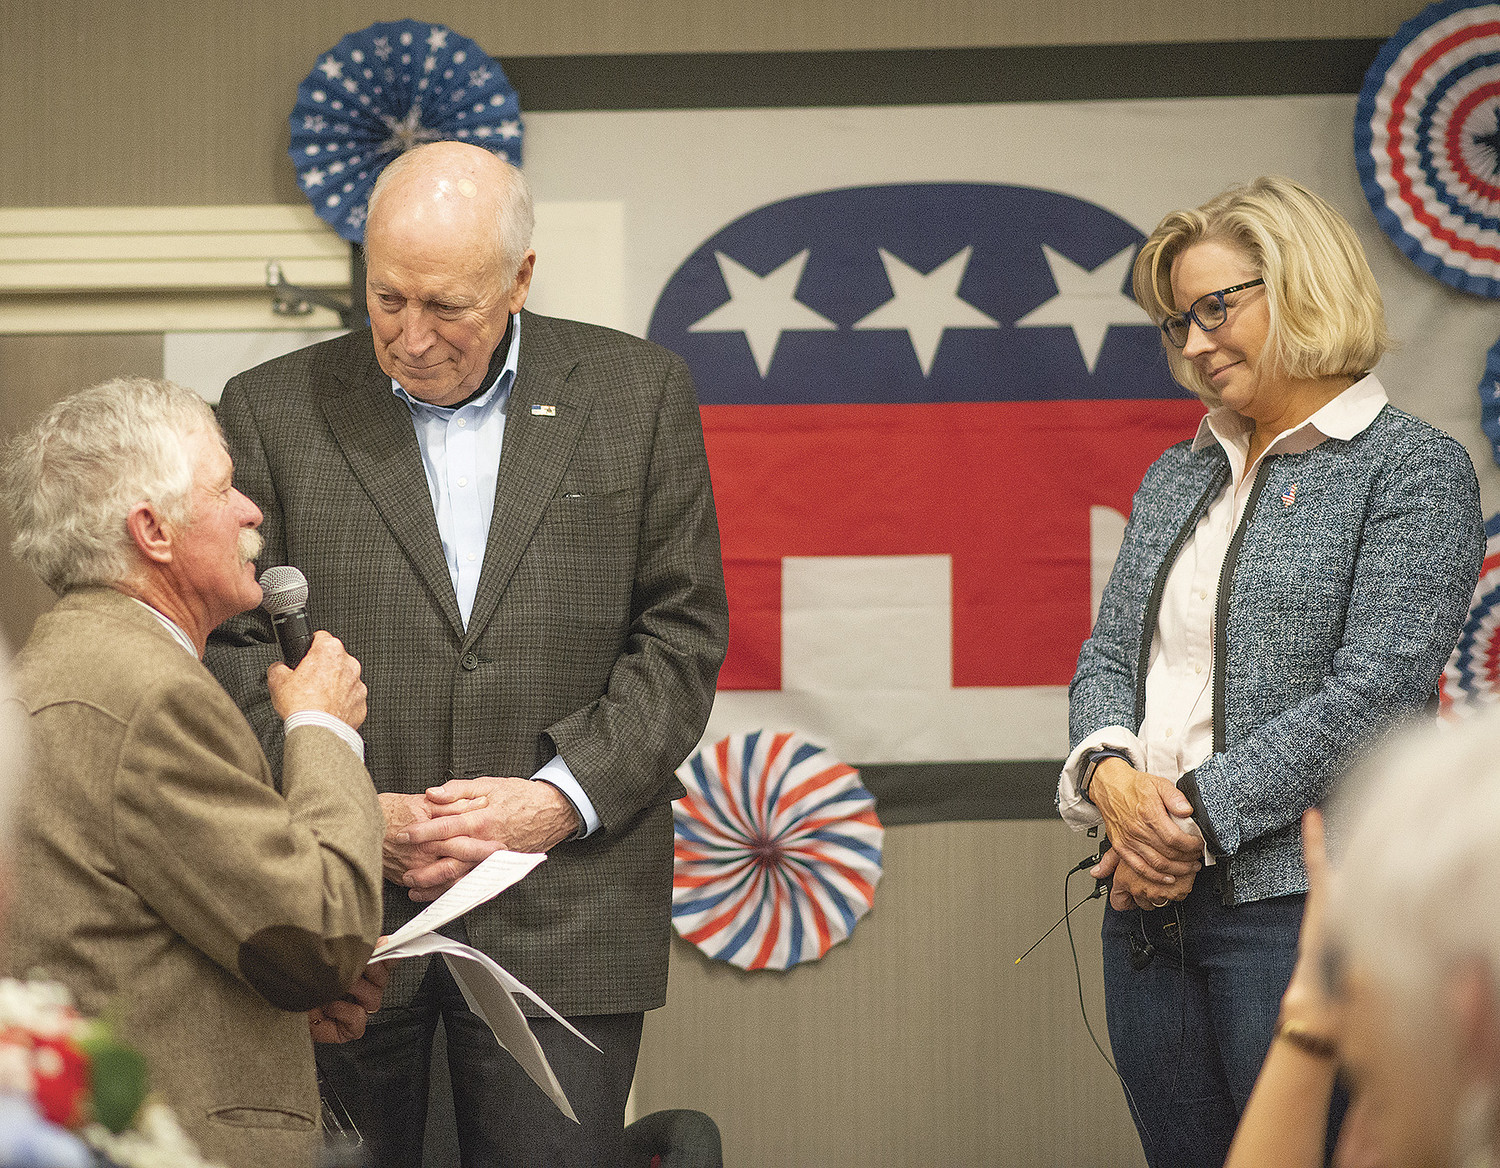 Martin Kimmet, chairman of the Park County Republican Party (left), introduces former Vice President Dick Cheney as U.S. Rep. Liz Cheney, the vice president's daughter, looks on at the party's Lincoln Day Dinner in Cody on Friday night.